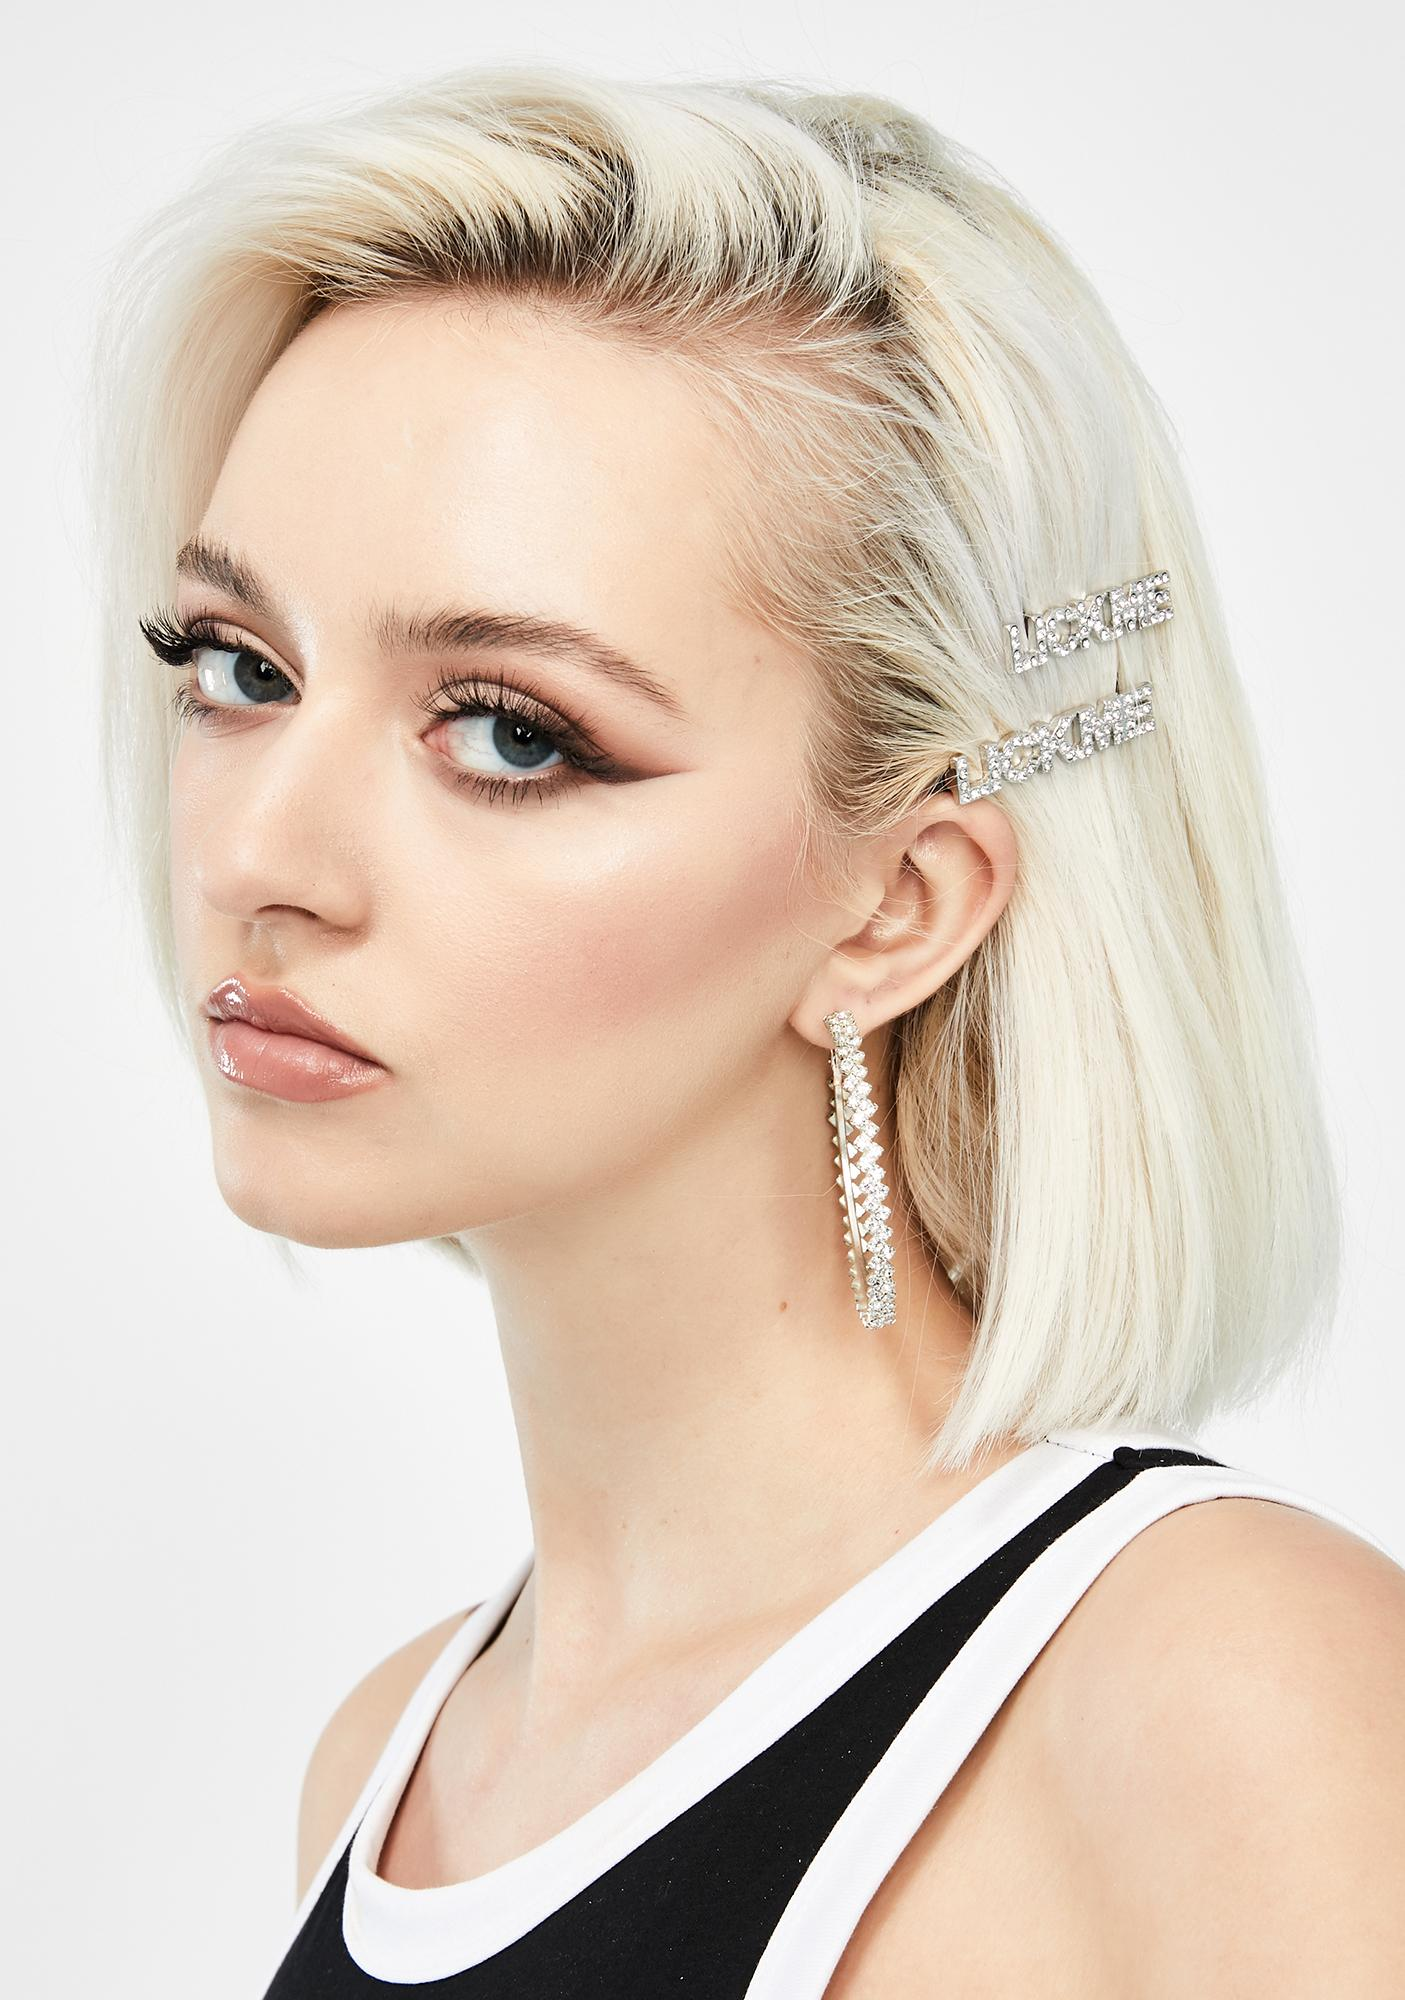 Lick This Rhinestone Hair Clips